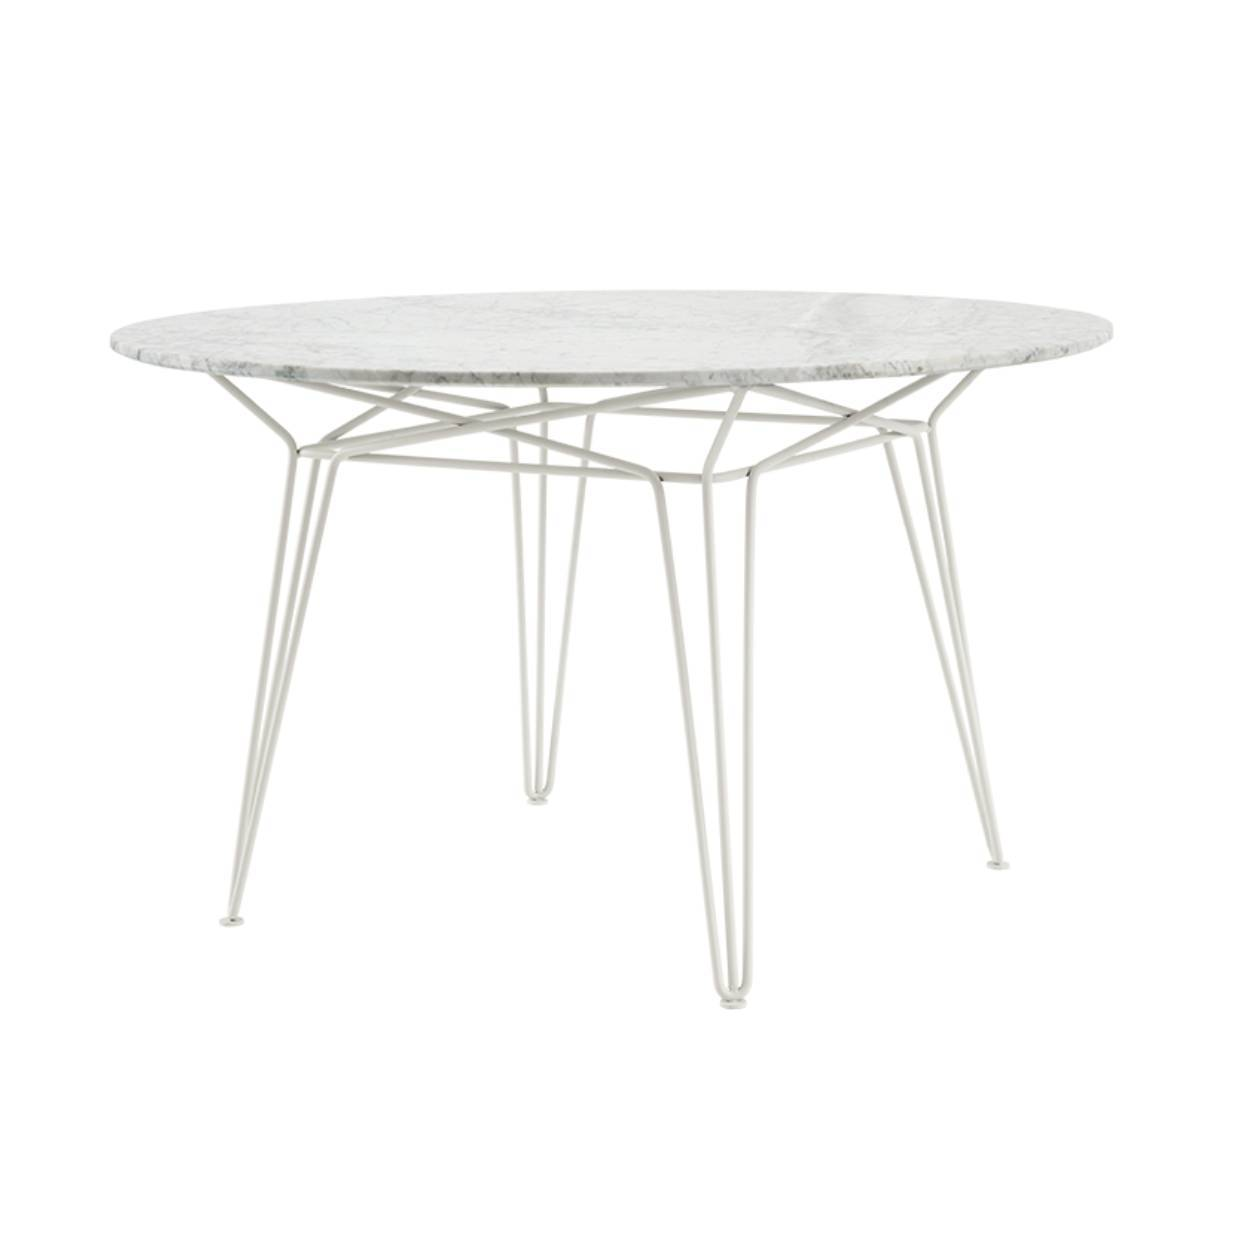 Parisi Dining Table: White + White Marble